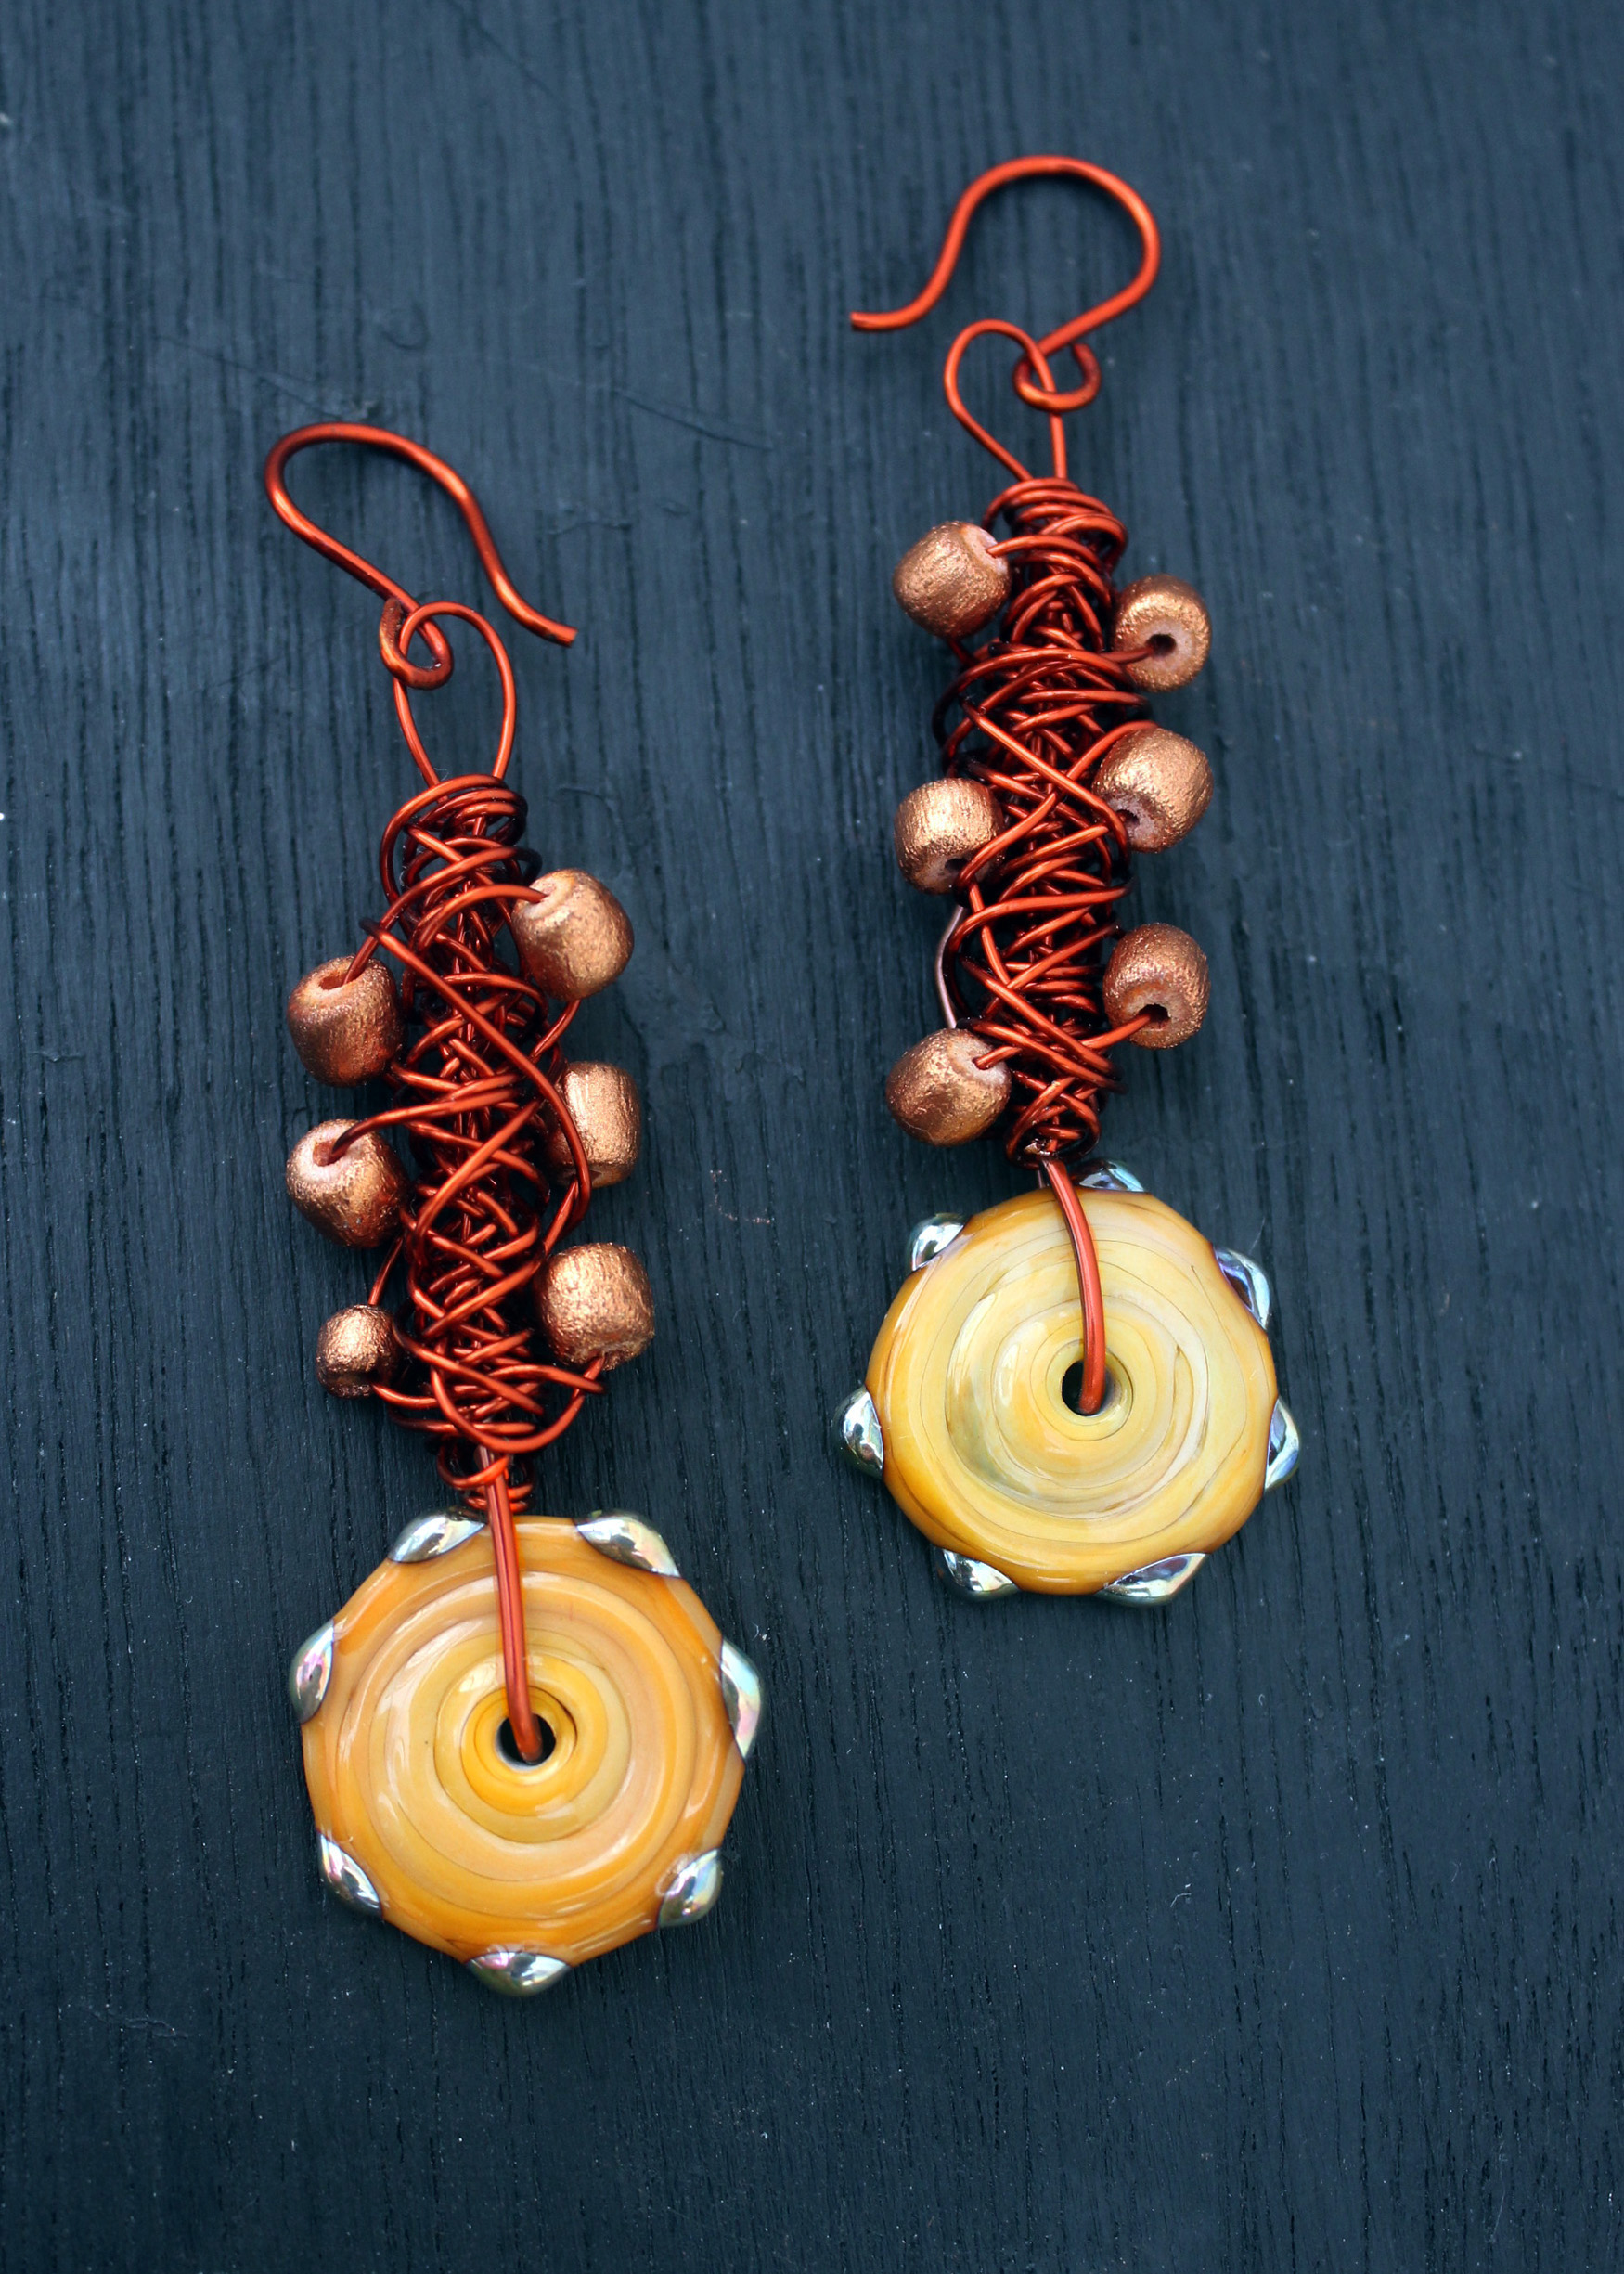 Diy jewelry project learn to make rustic wire earrings for Learn to draw jewelry